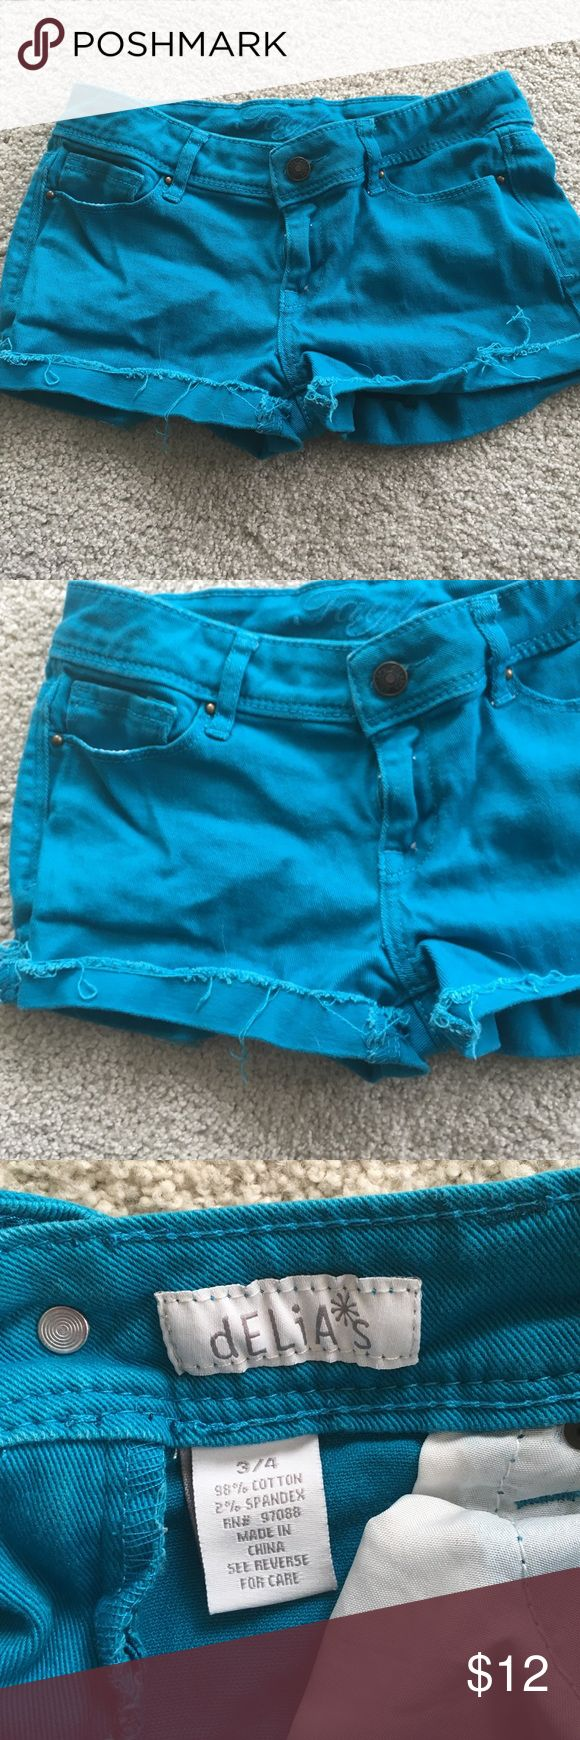 Women's jean shorts by Delia's size 3/4 These are a gently used pair of Women's blue shorts by Delia's. The blue is a gorgeous turquoise color. Size 3/4, 98% cotton, 2% spandex.                                                                   Features a ripped denim look at the bottom of the shorts. Taylor Shorts Jean Shorts